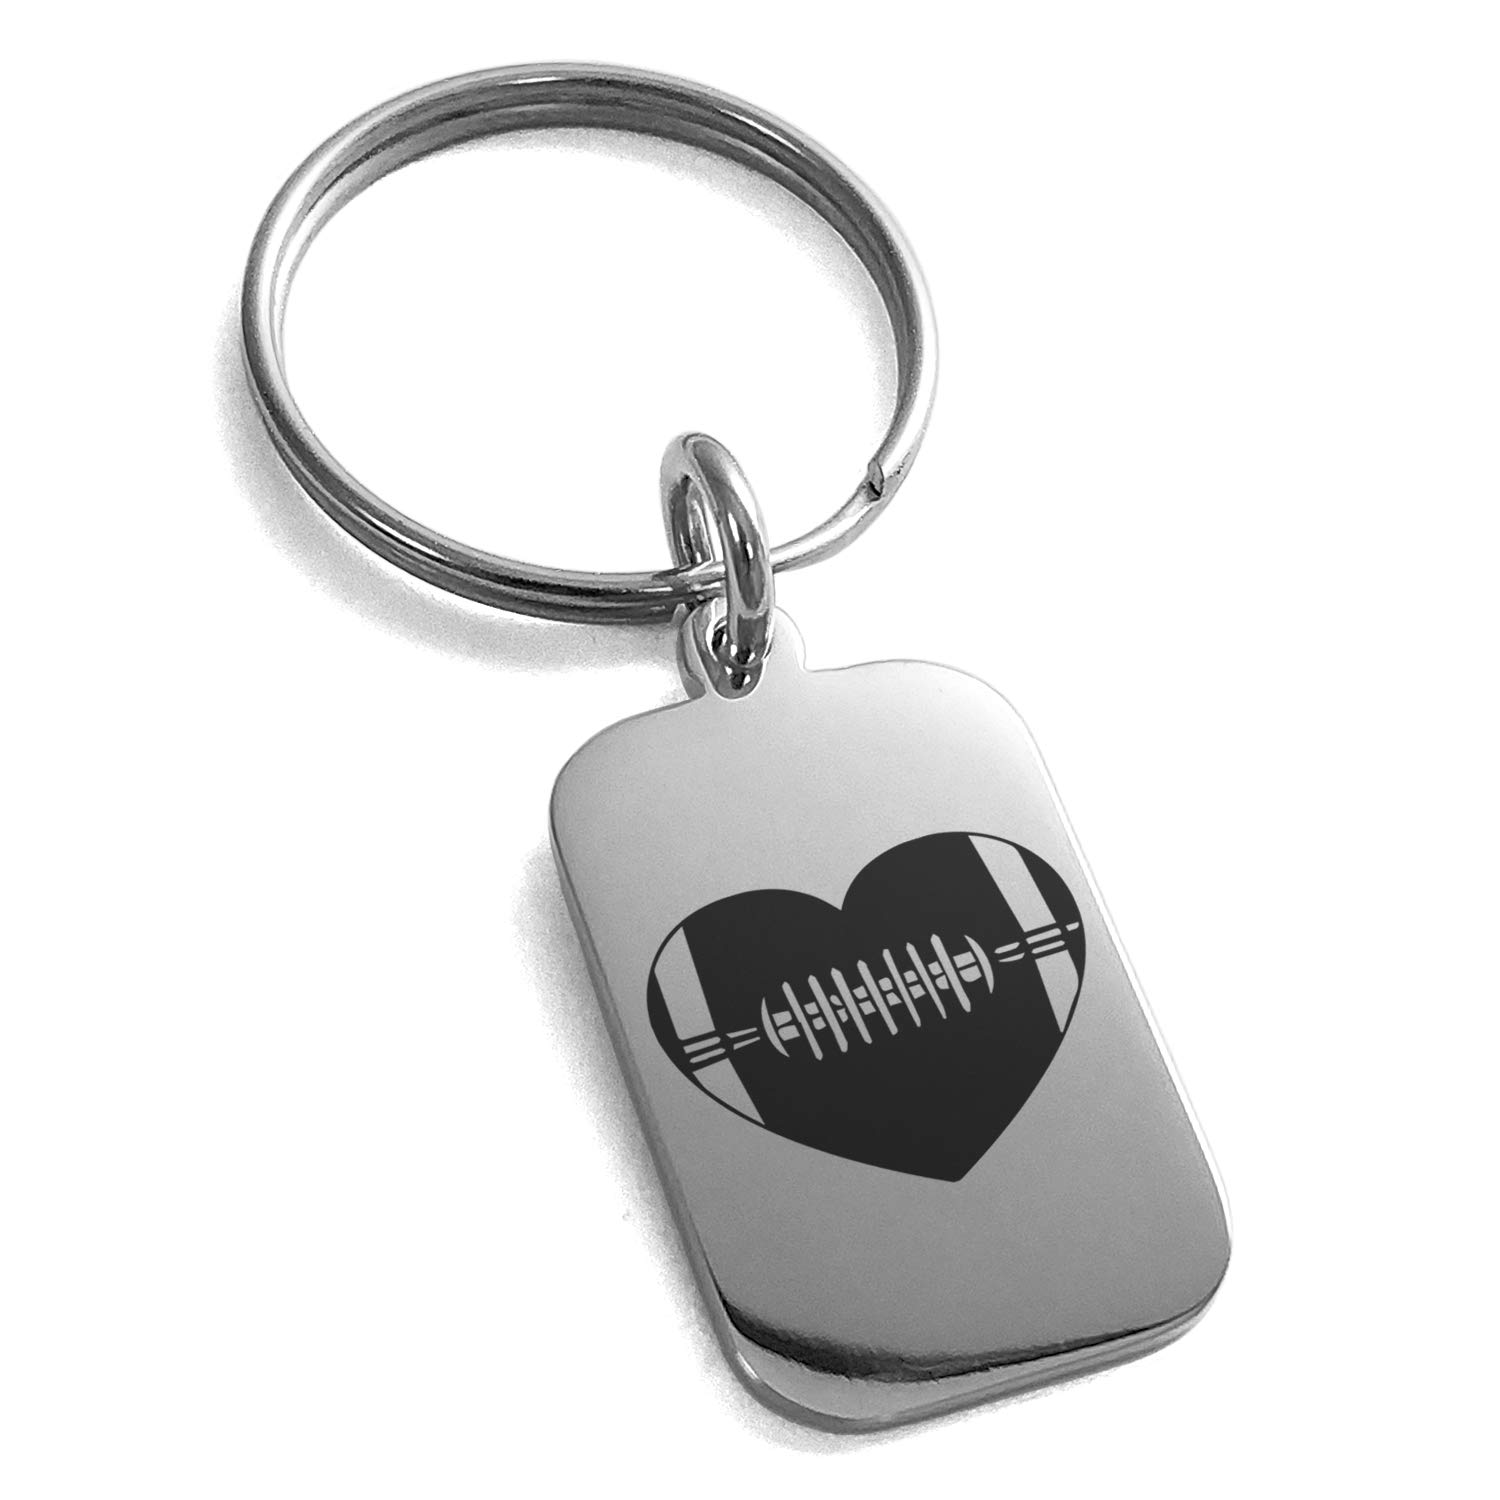 Tioneer Stainless Steel Love Football Heart Engraved Small Rectangle Dog Tag Charm Keychain Keyring